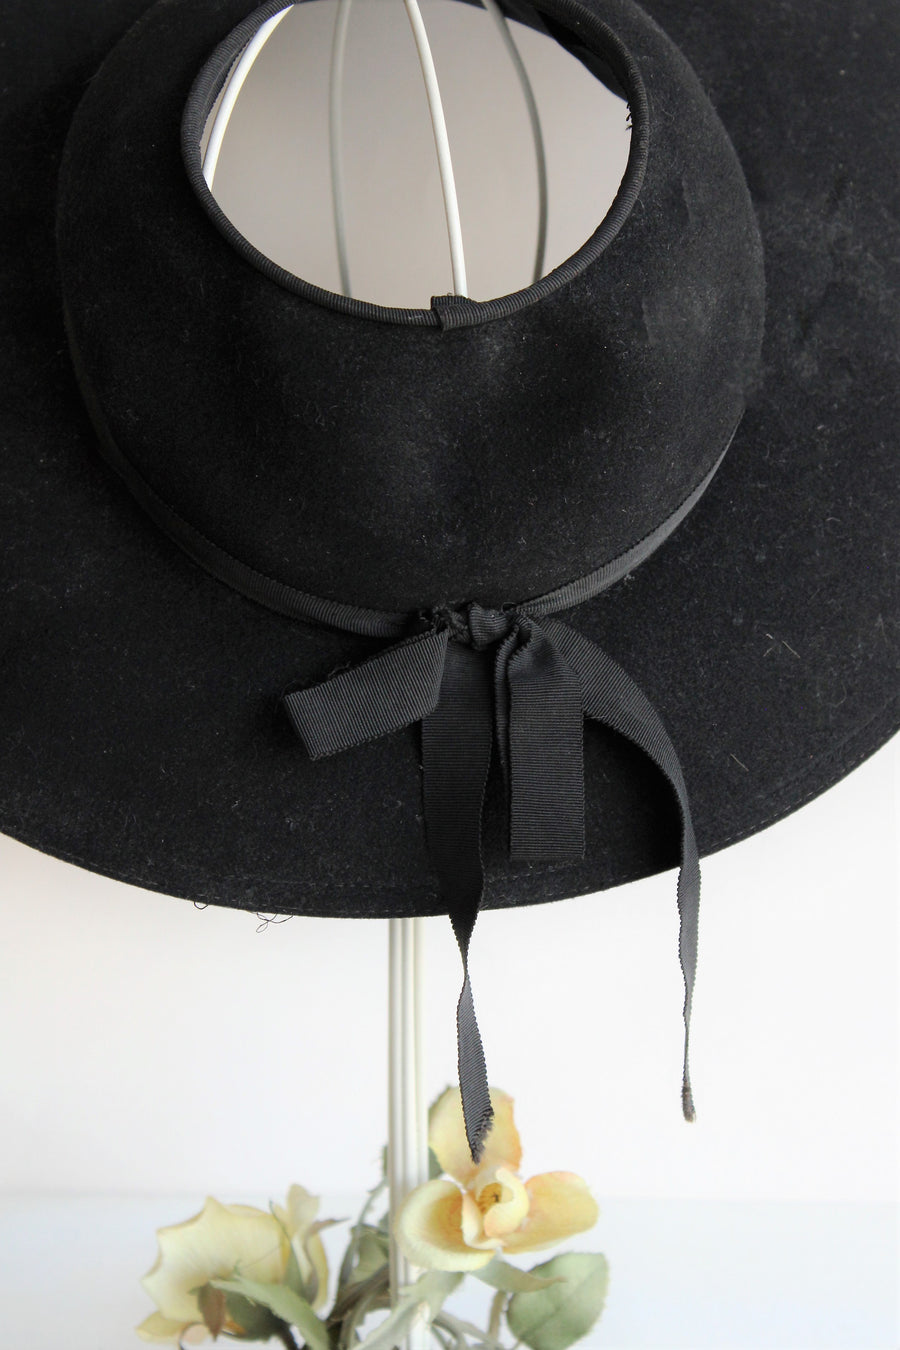 Vintage 1940s 1950s Wide Brimmed Black Hat with Open Crown by Merrimac